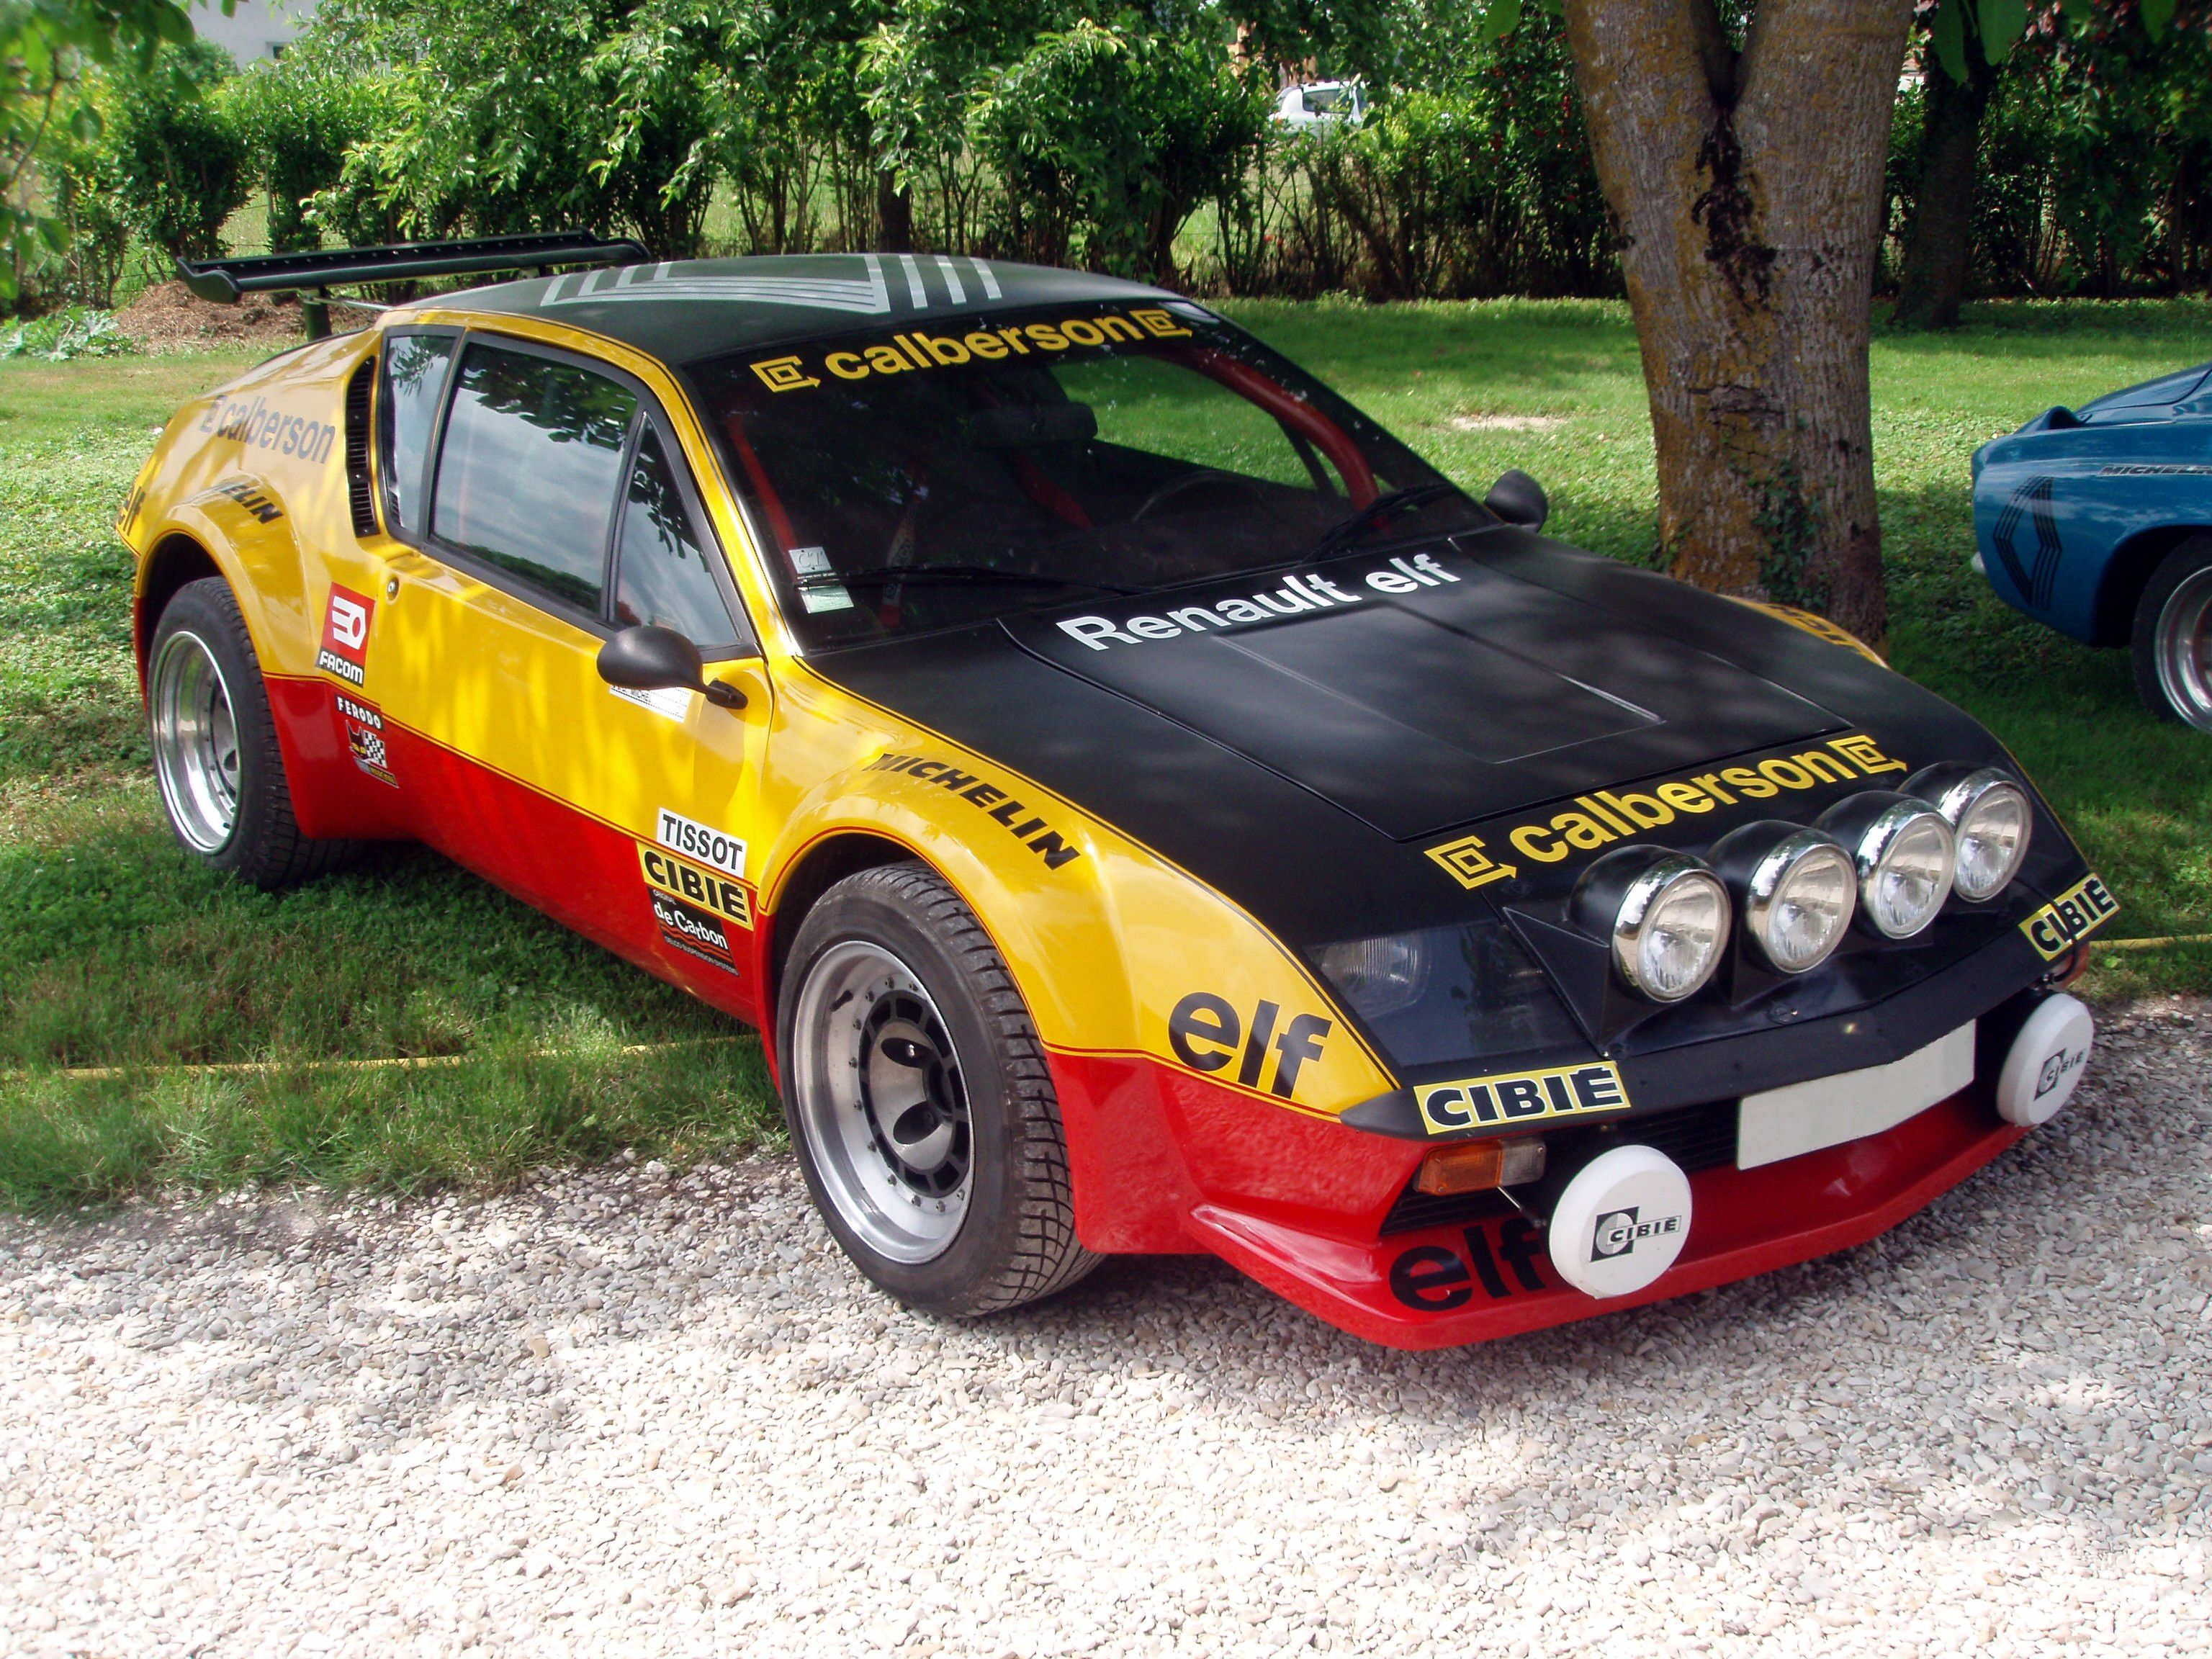 renault alpine a310 v6 rally car classic cars pinterest rally car rally and cars. Black Bedroom Furniture Sets. Home Design Ideas